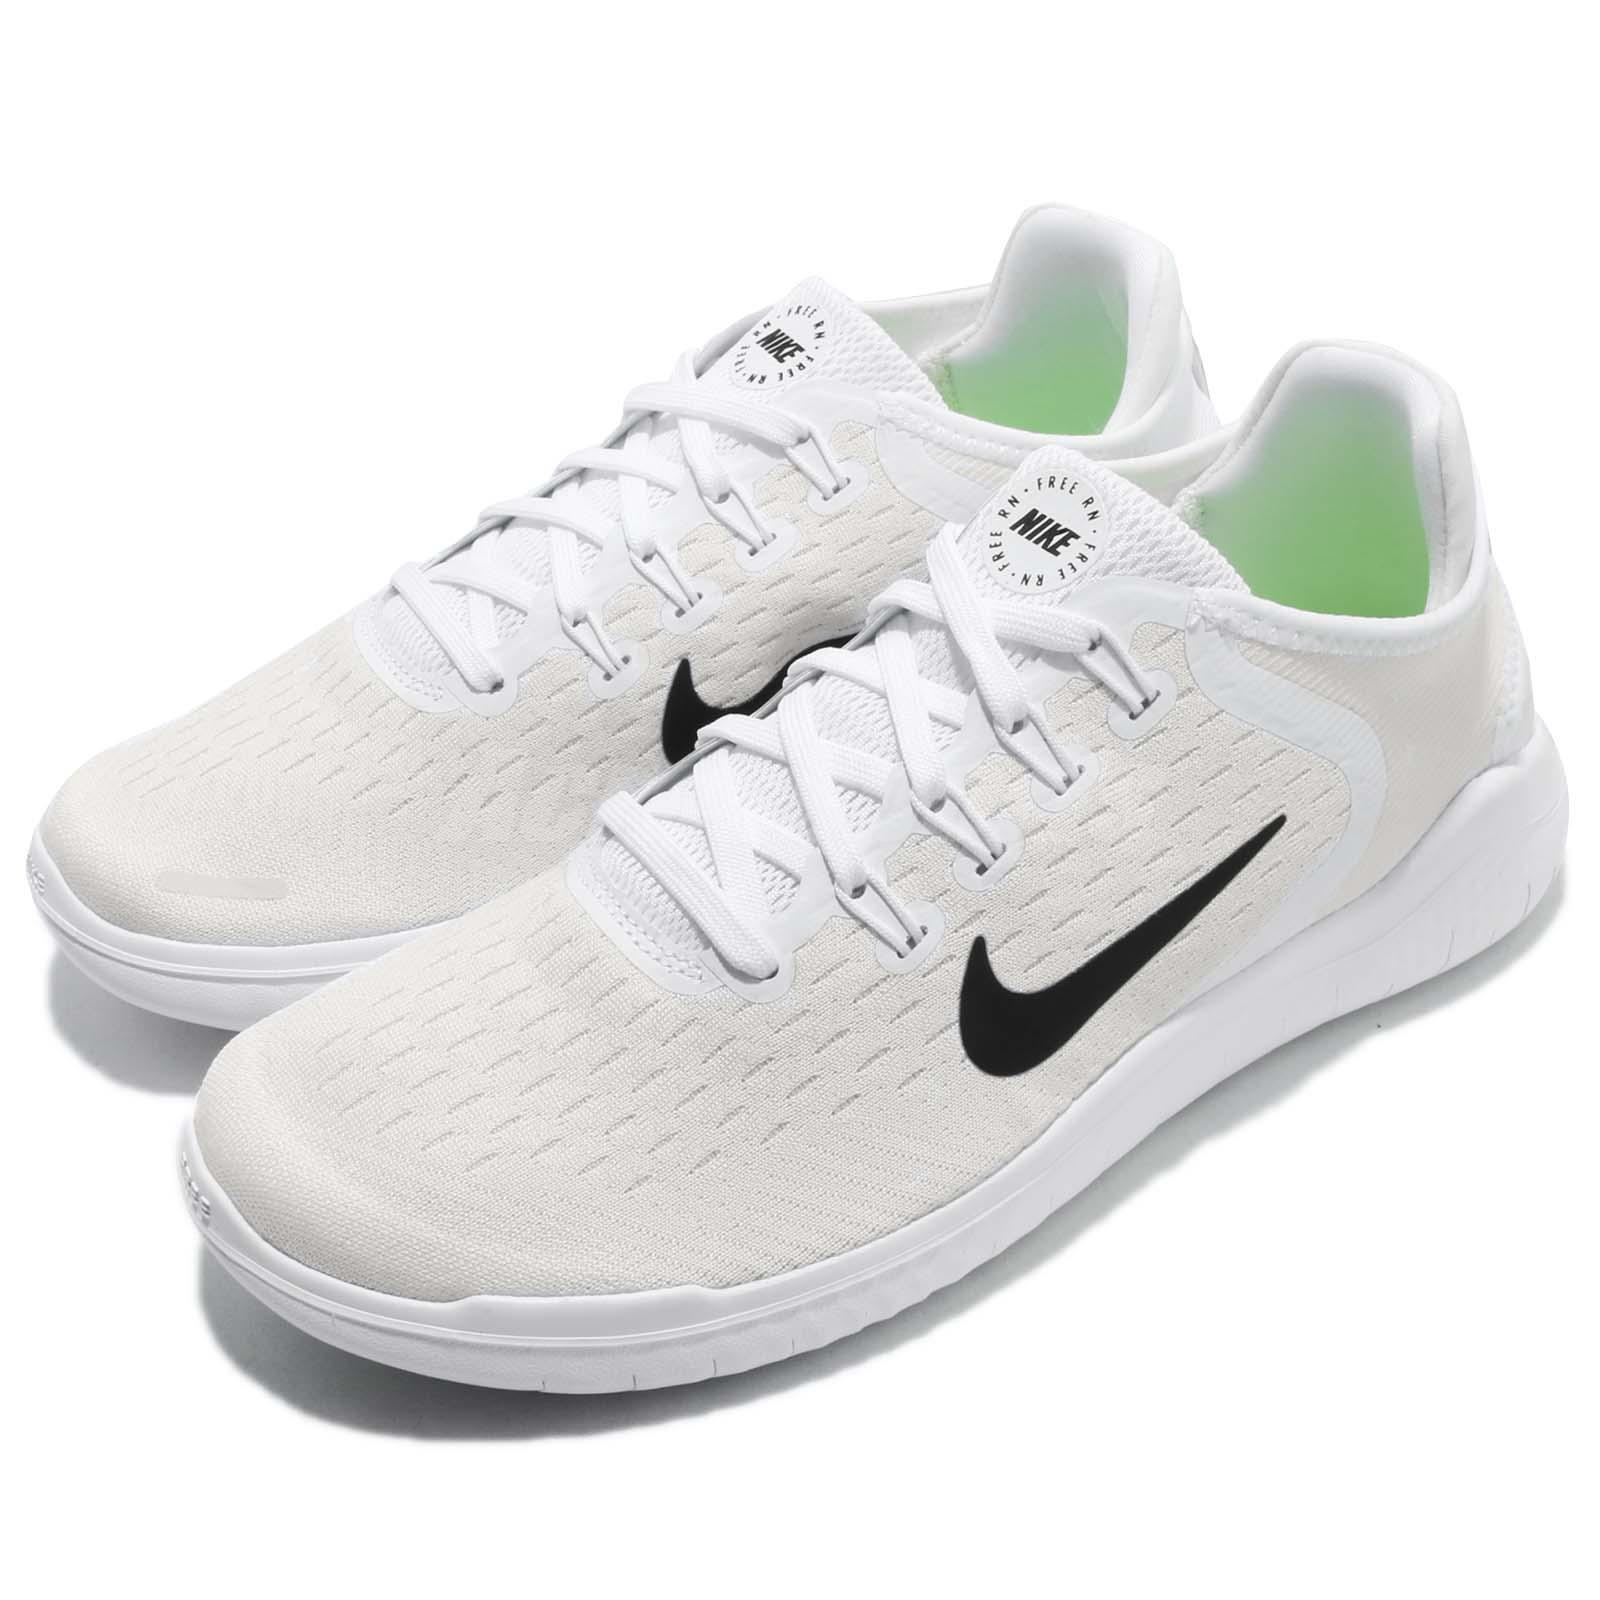 new product f928a 76e3c Details about Wmns Nike Free RN 2018 Run White Black Women Running Shoes  Sneakers 942837-100